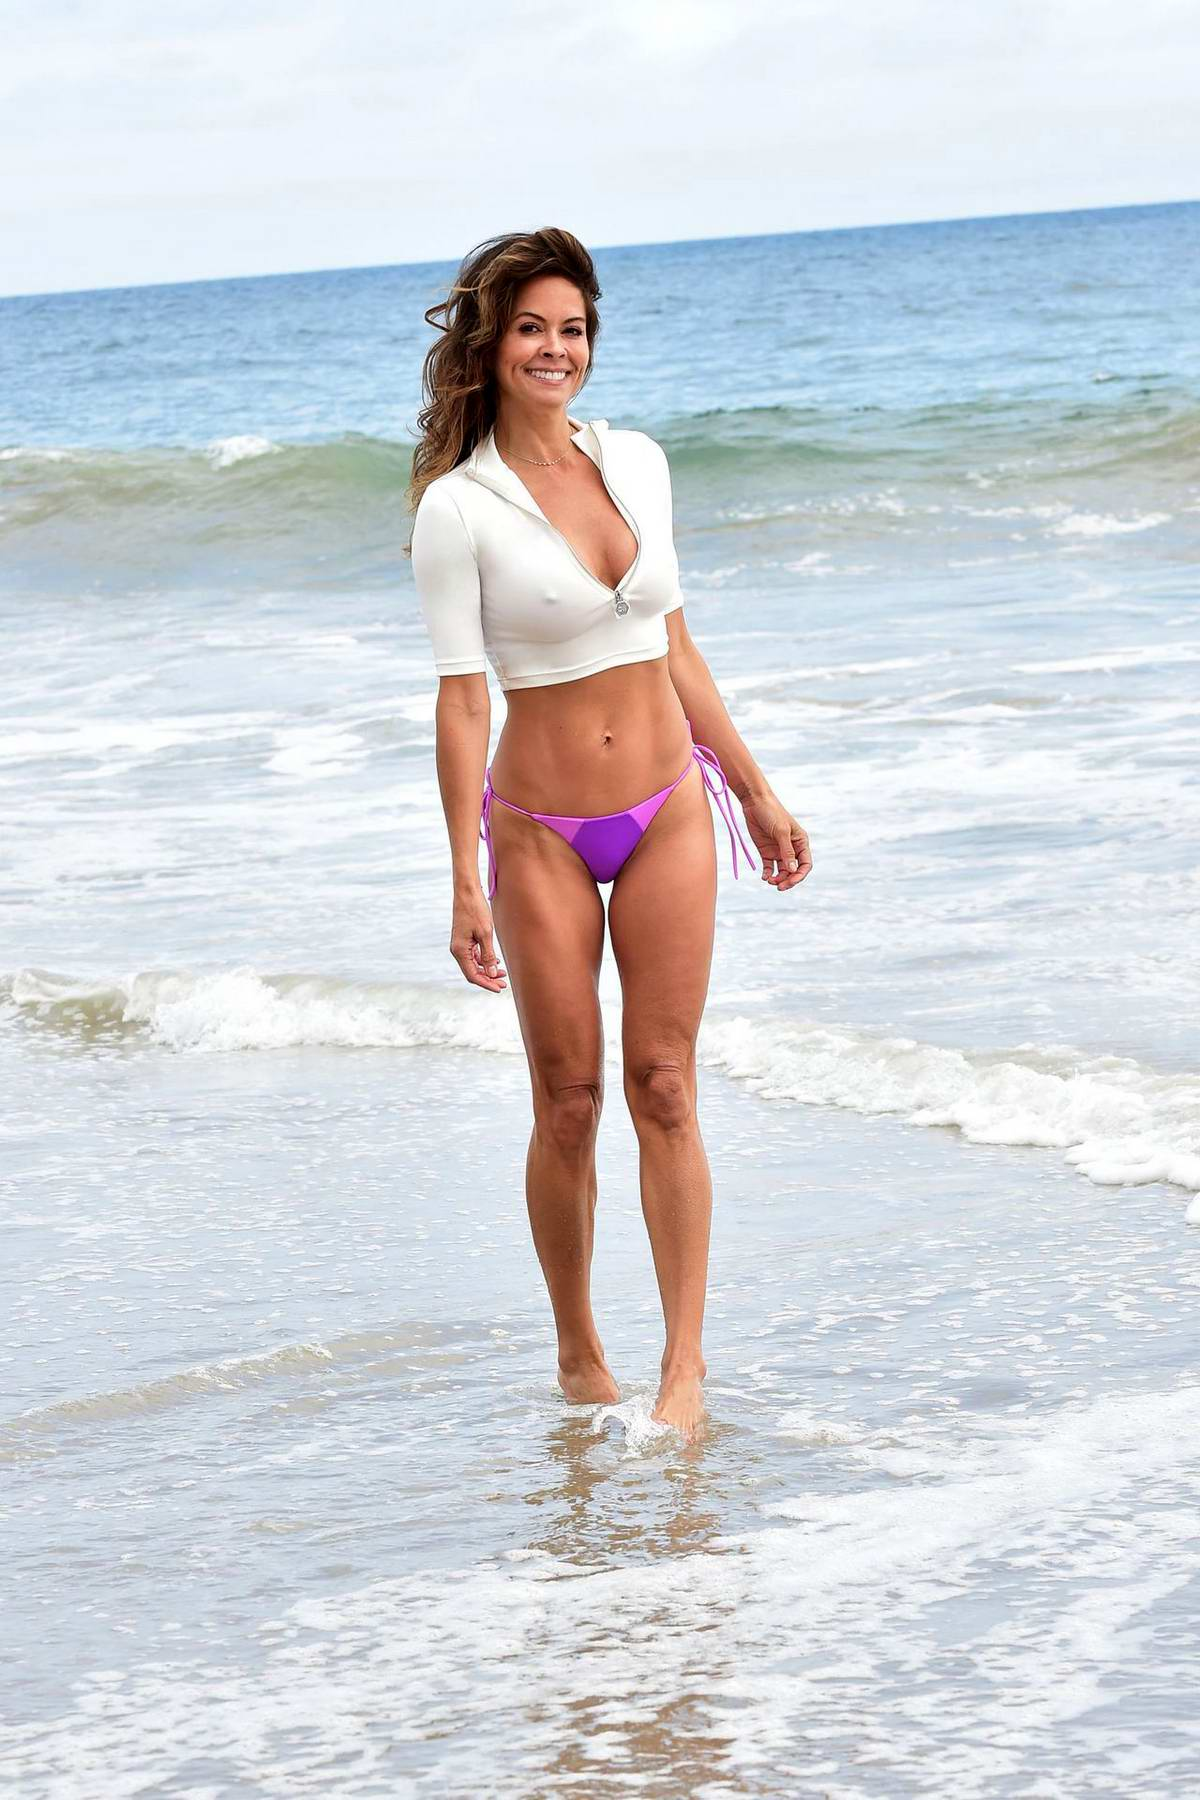 Brooke Burke enjoys the beach in a crop top and bikini bottoms in Malibu, California